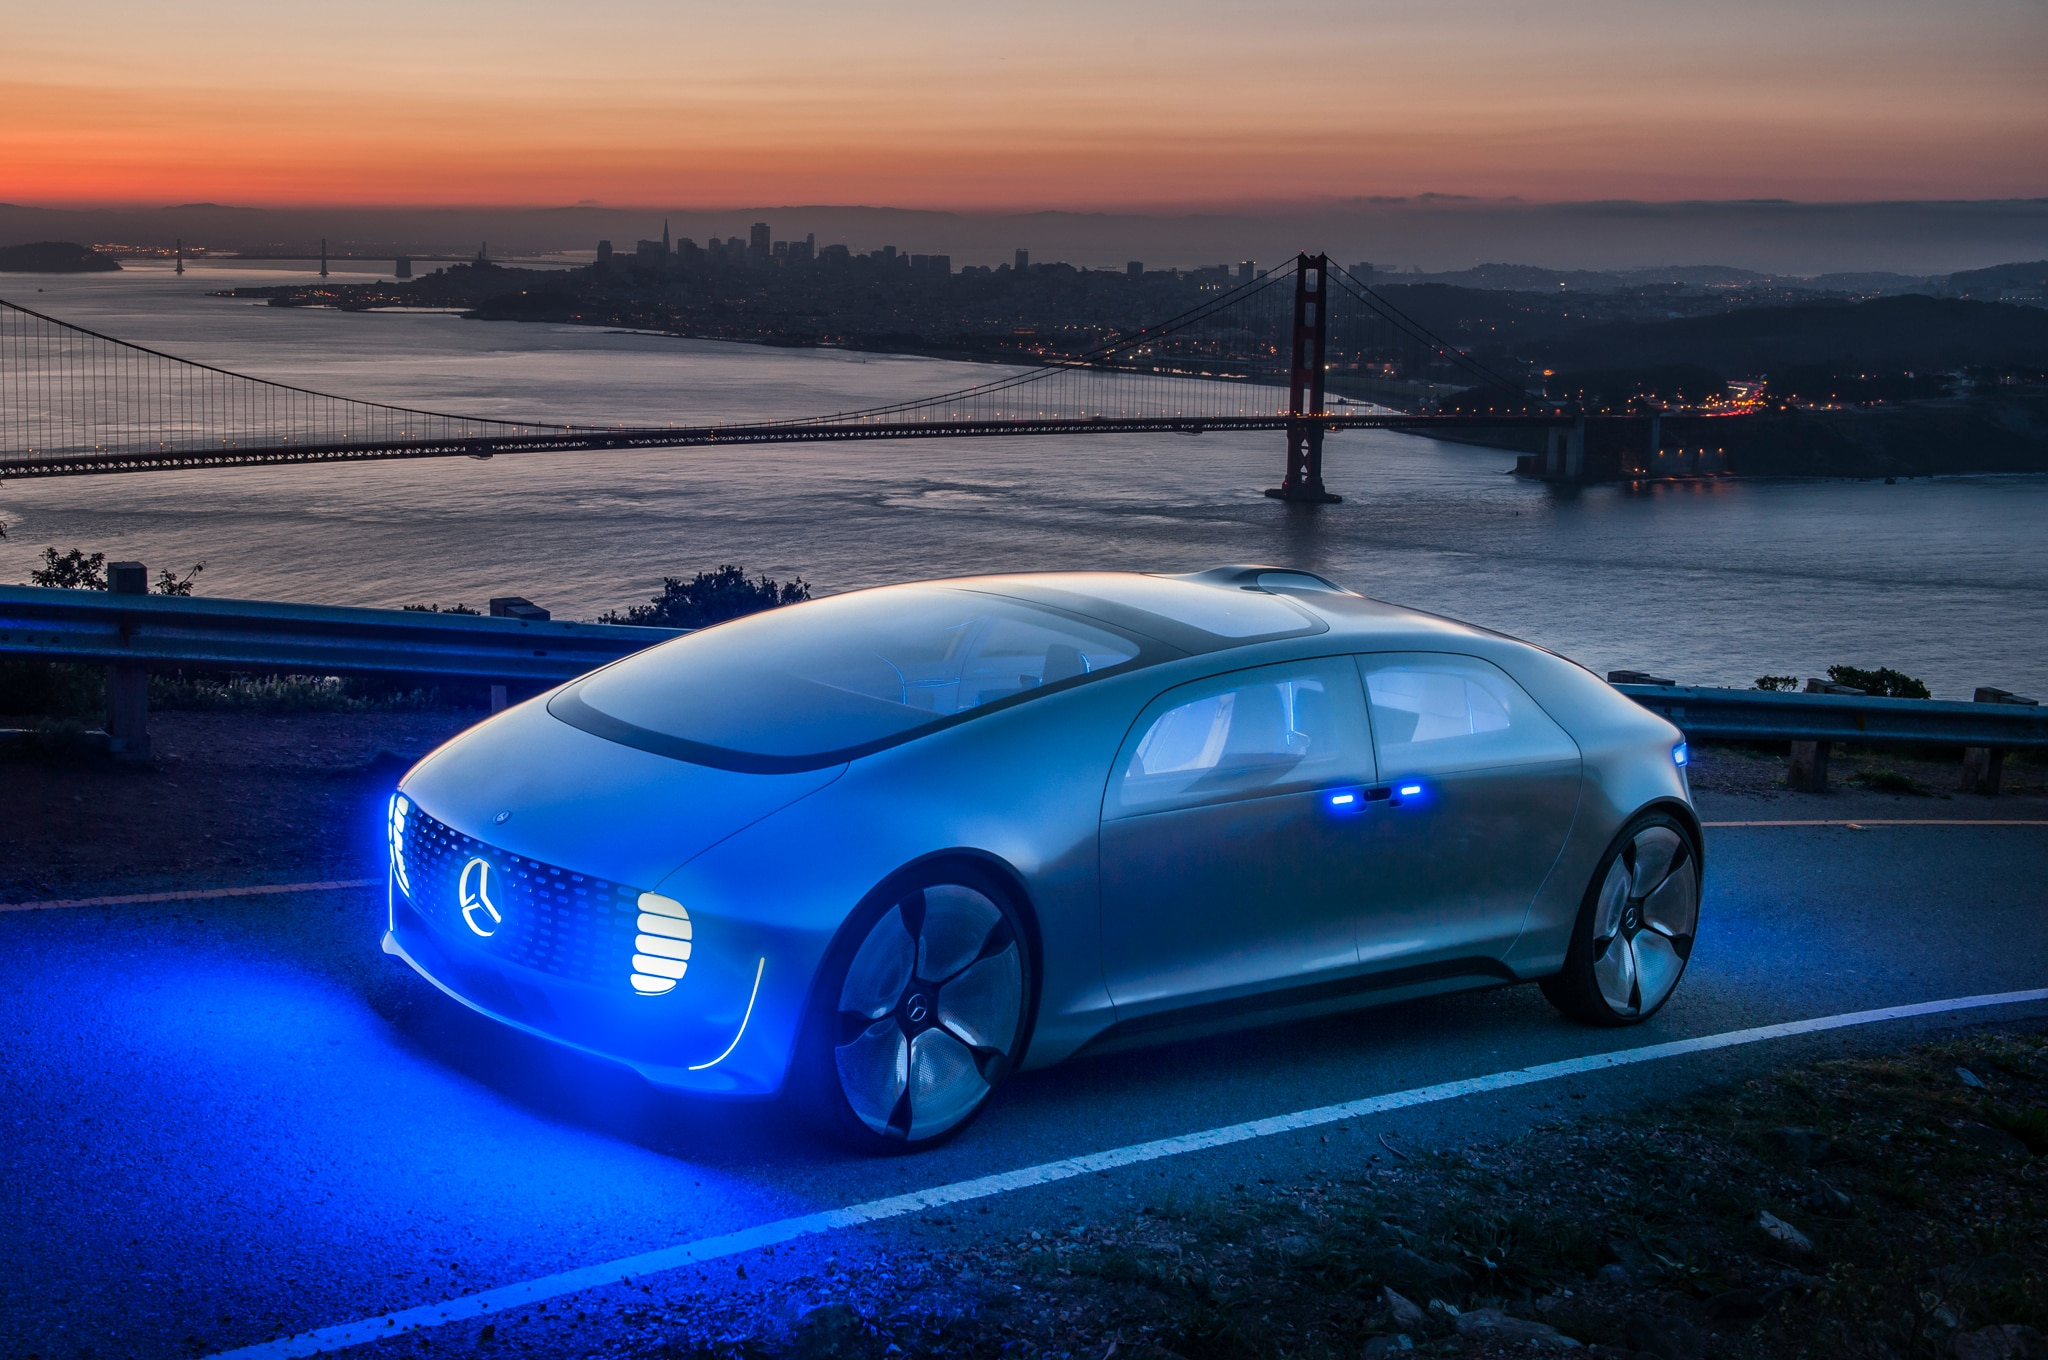 Riding in the mercedes benz f 015 luxury in motion concept for Exotic mercedes benz